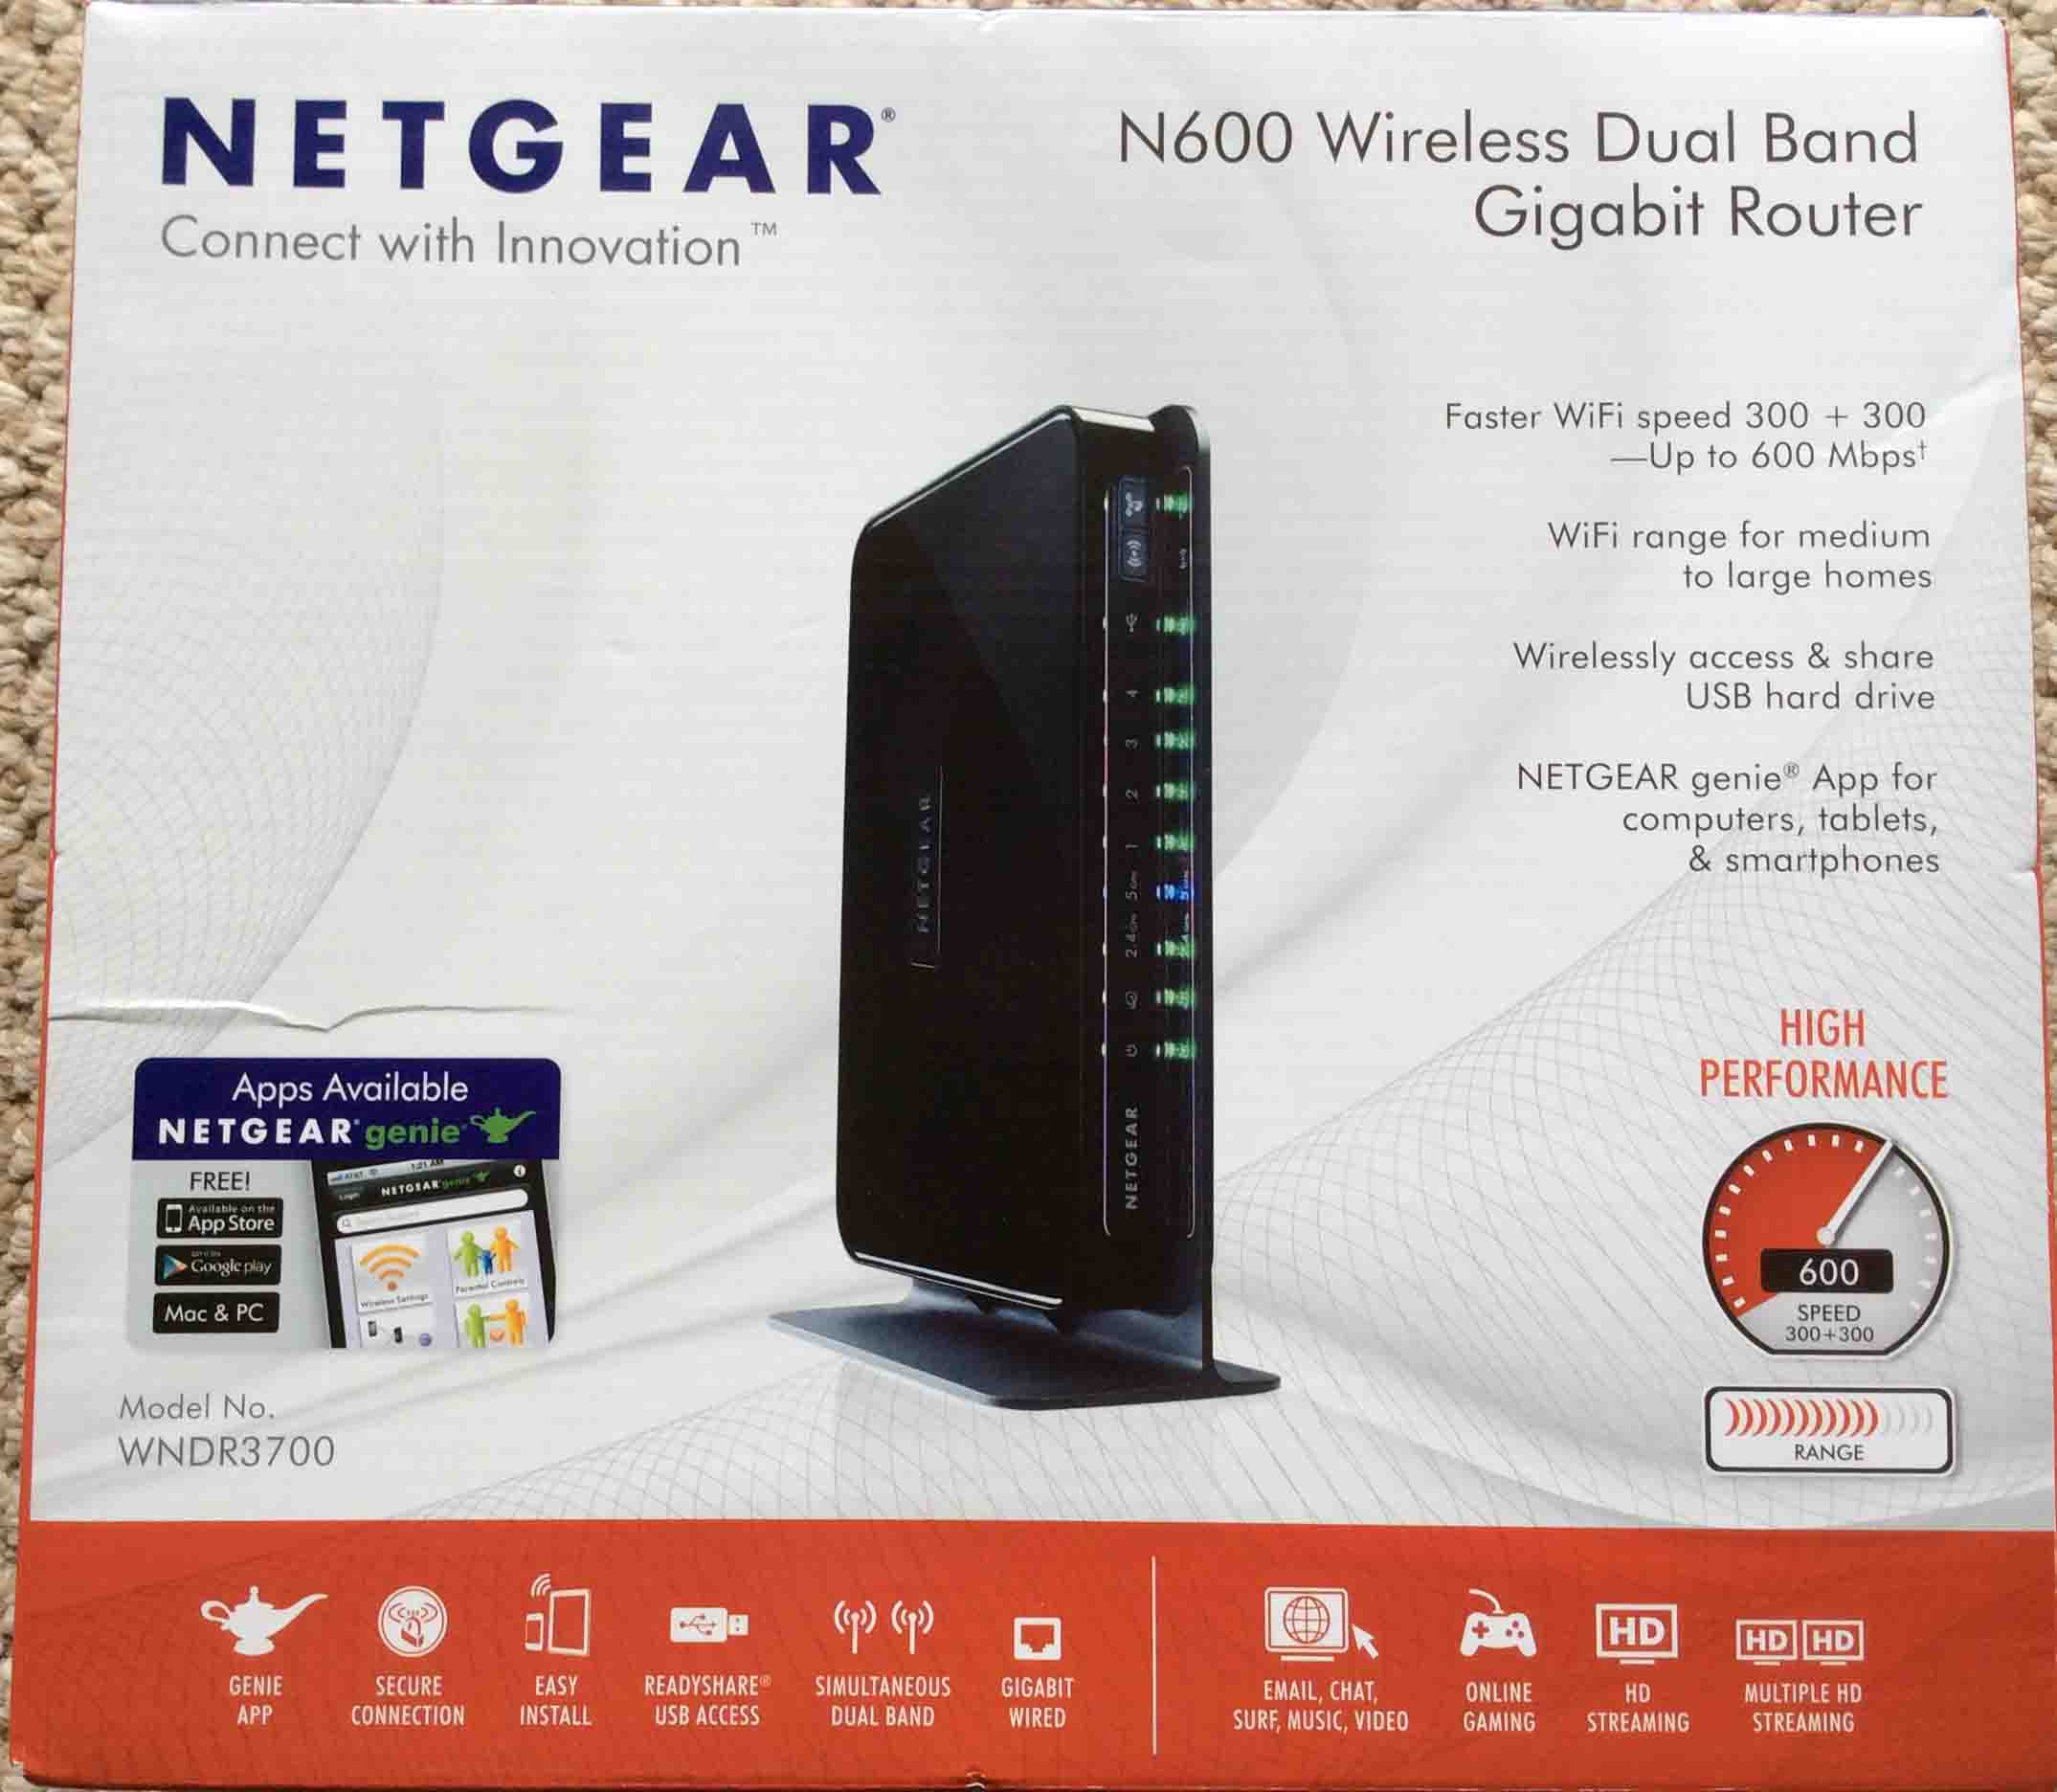 Netgear n600 wireless dual band gigabit router wndr3700v4 review picture of the front of the original carton for the netgear n600 wndr3700v4 wifi router keyboard keysfo Gallery